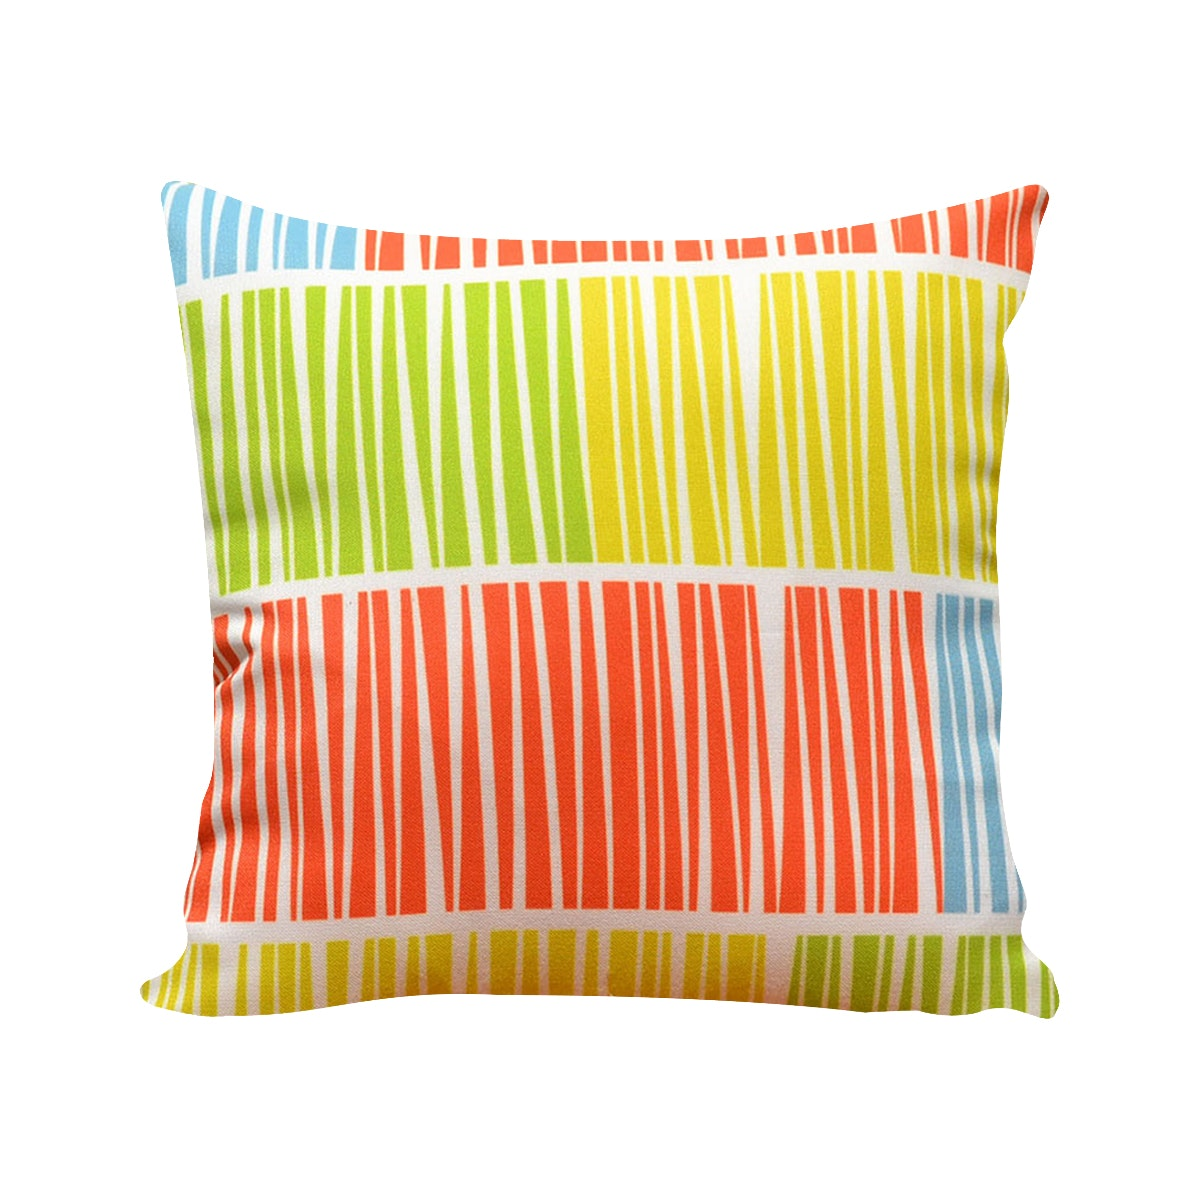 KAWUNG LIVING Color Me Stripes Cushion 45x45cm (Insert+Cover)